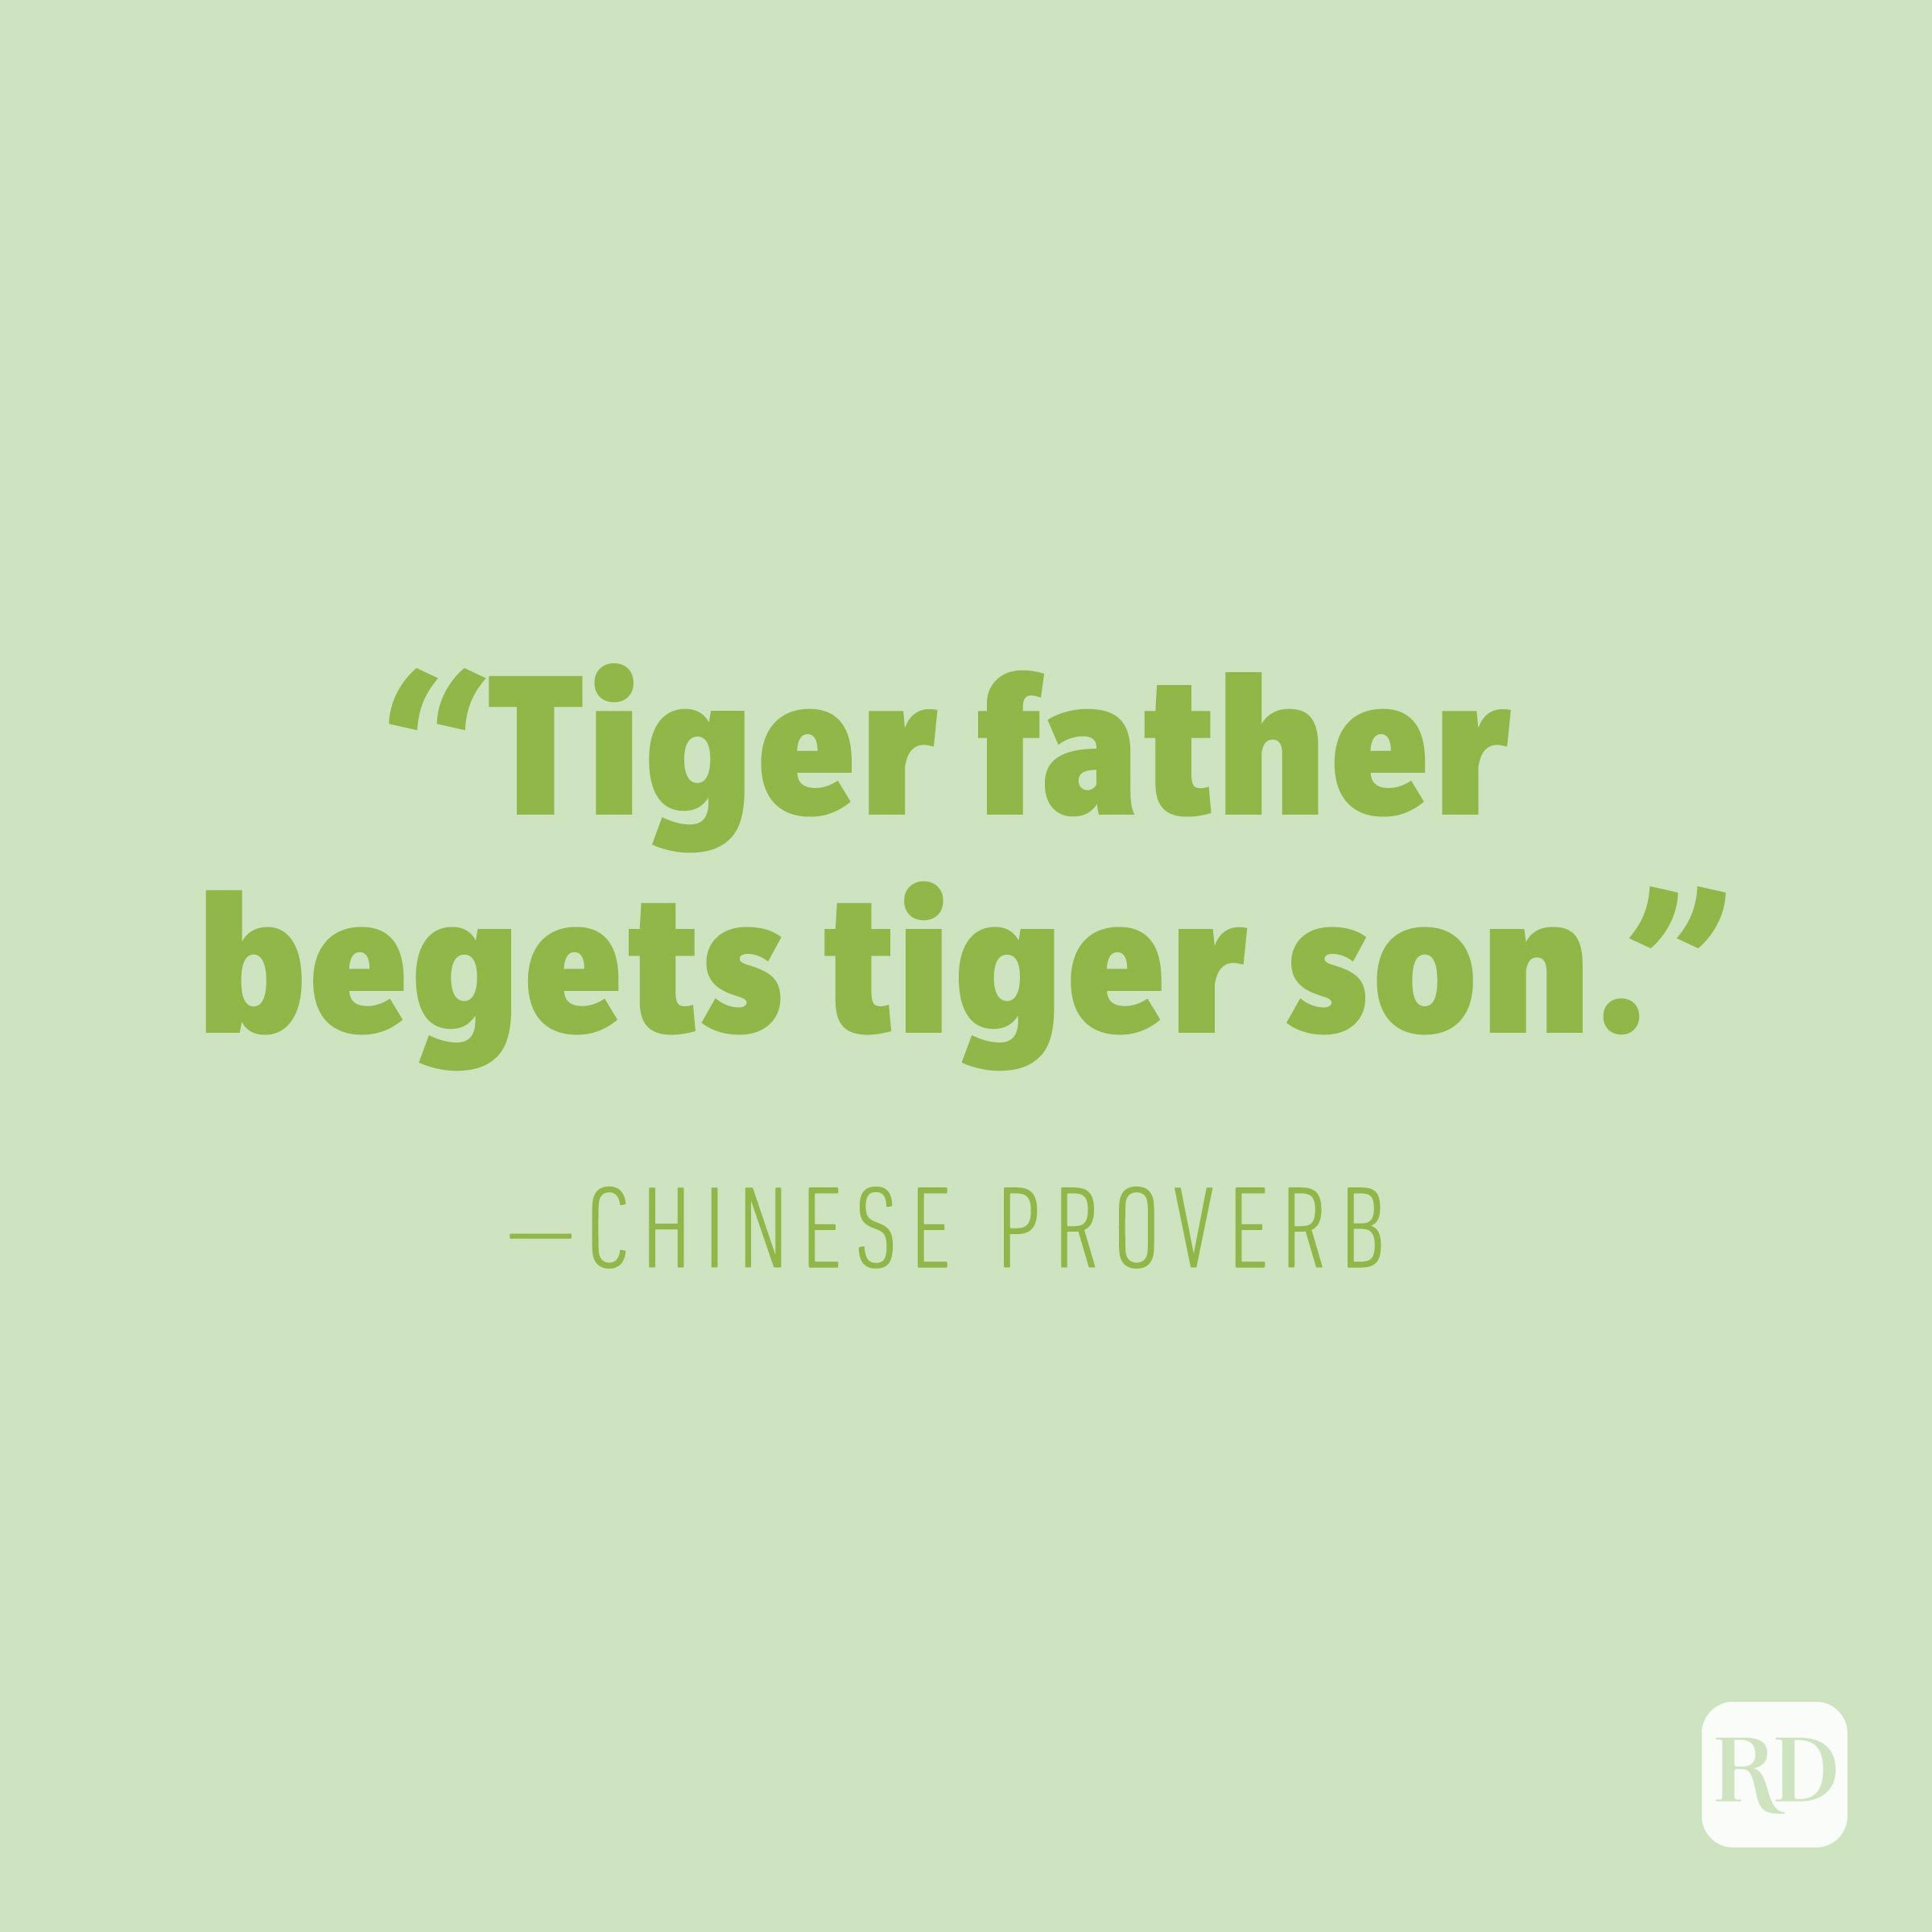 """Tiger father begets tiger son.""  —CHINESE PROVERB"